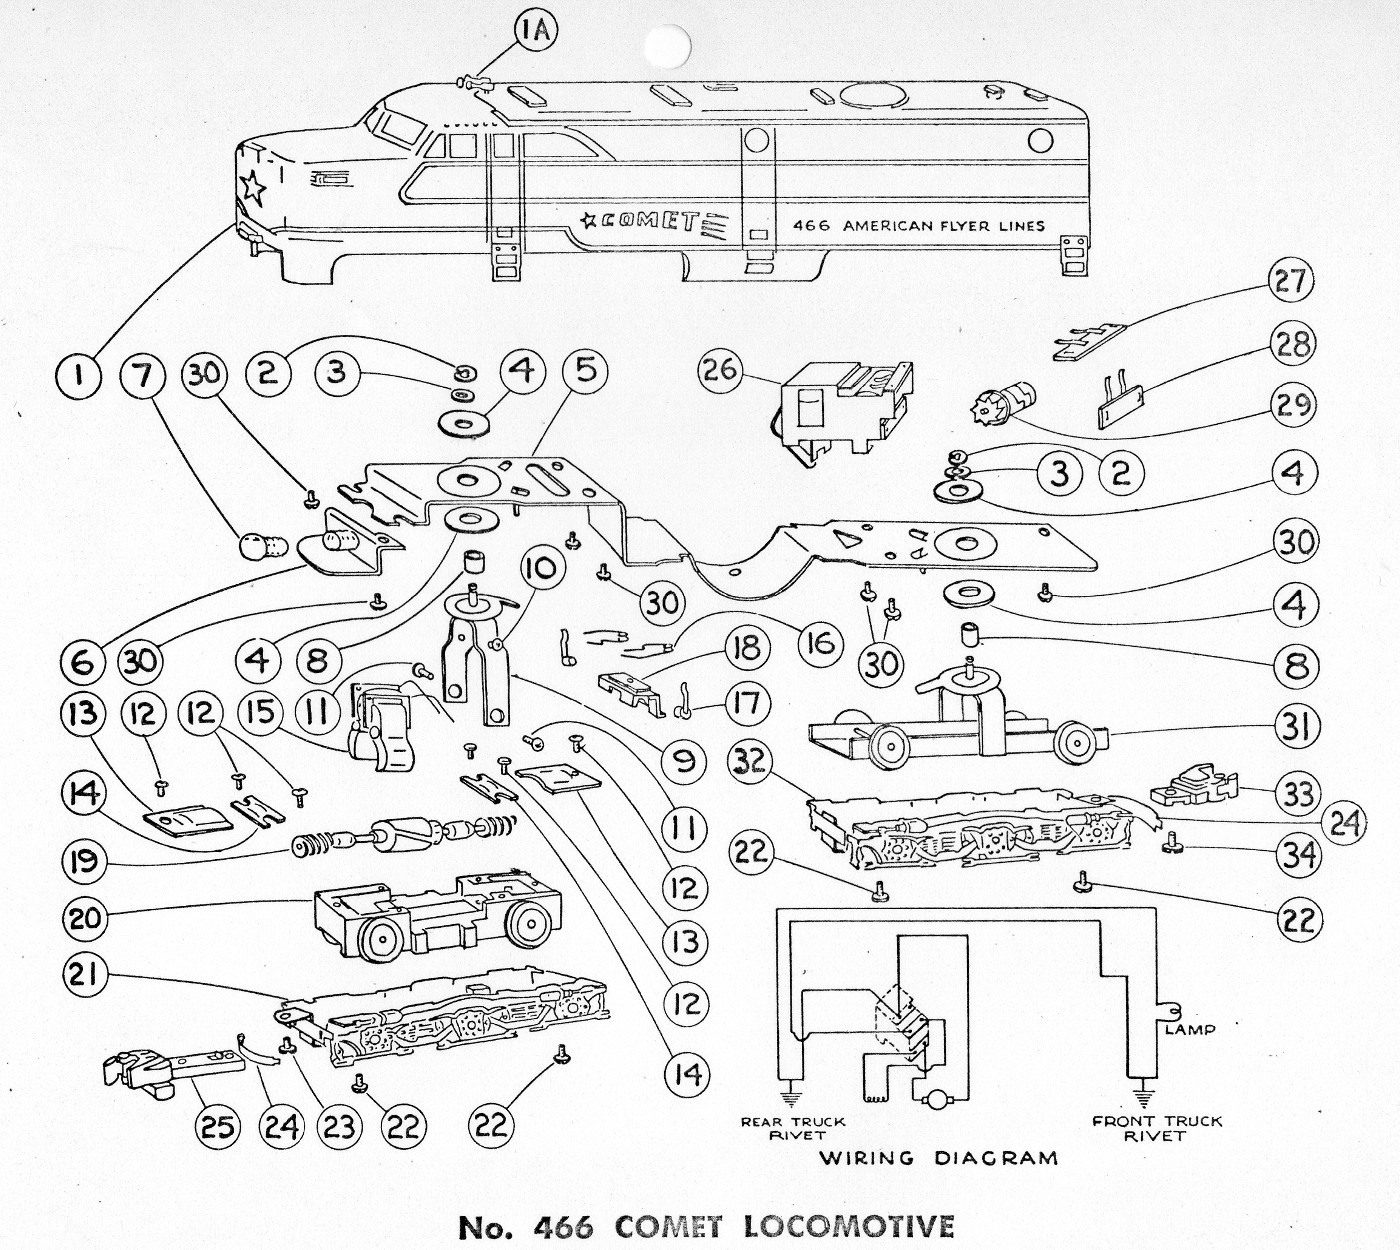 lionel 497 wiring diagram lionel locomotive wiring